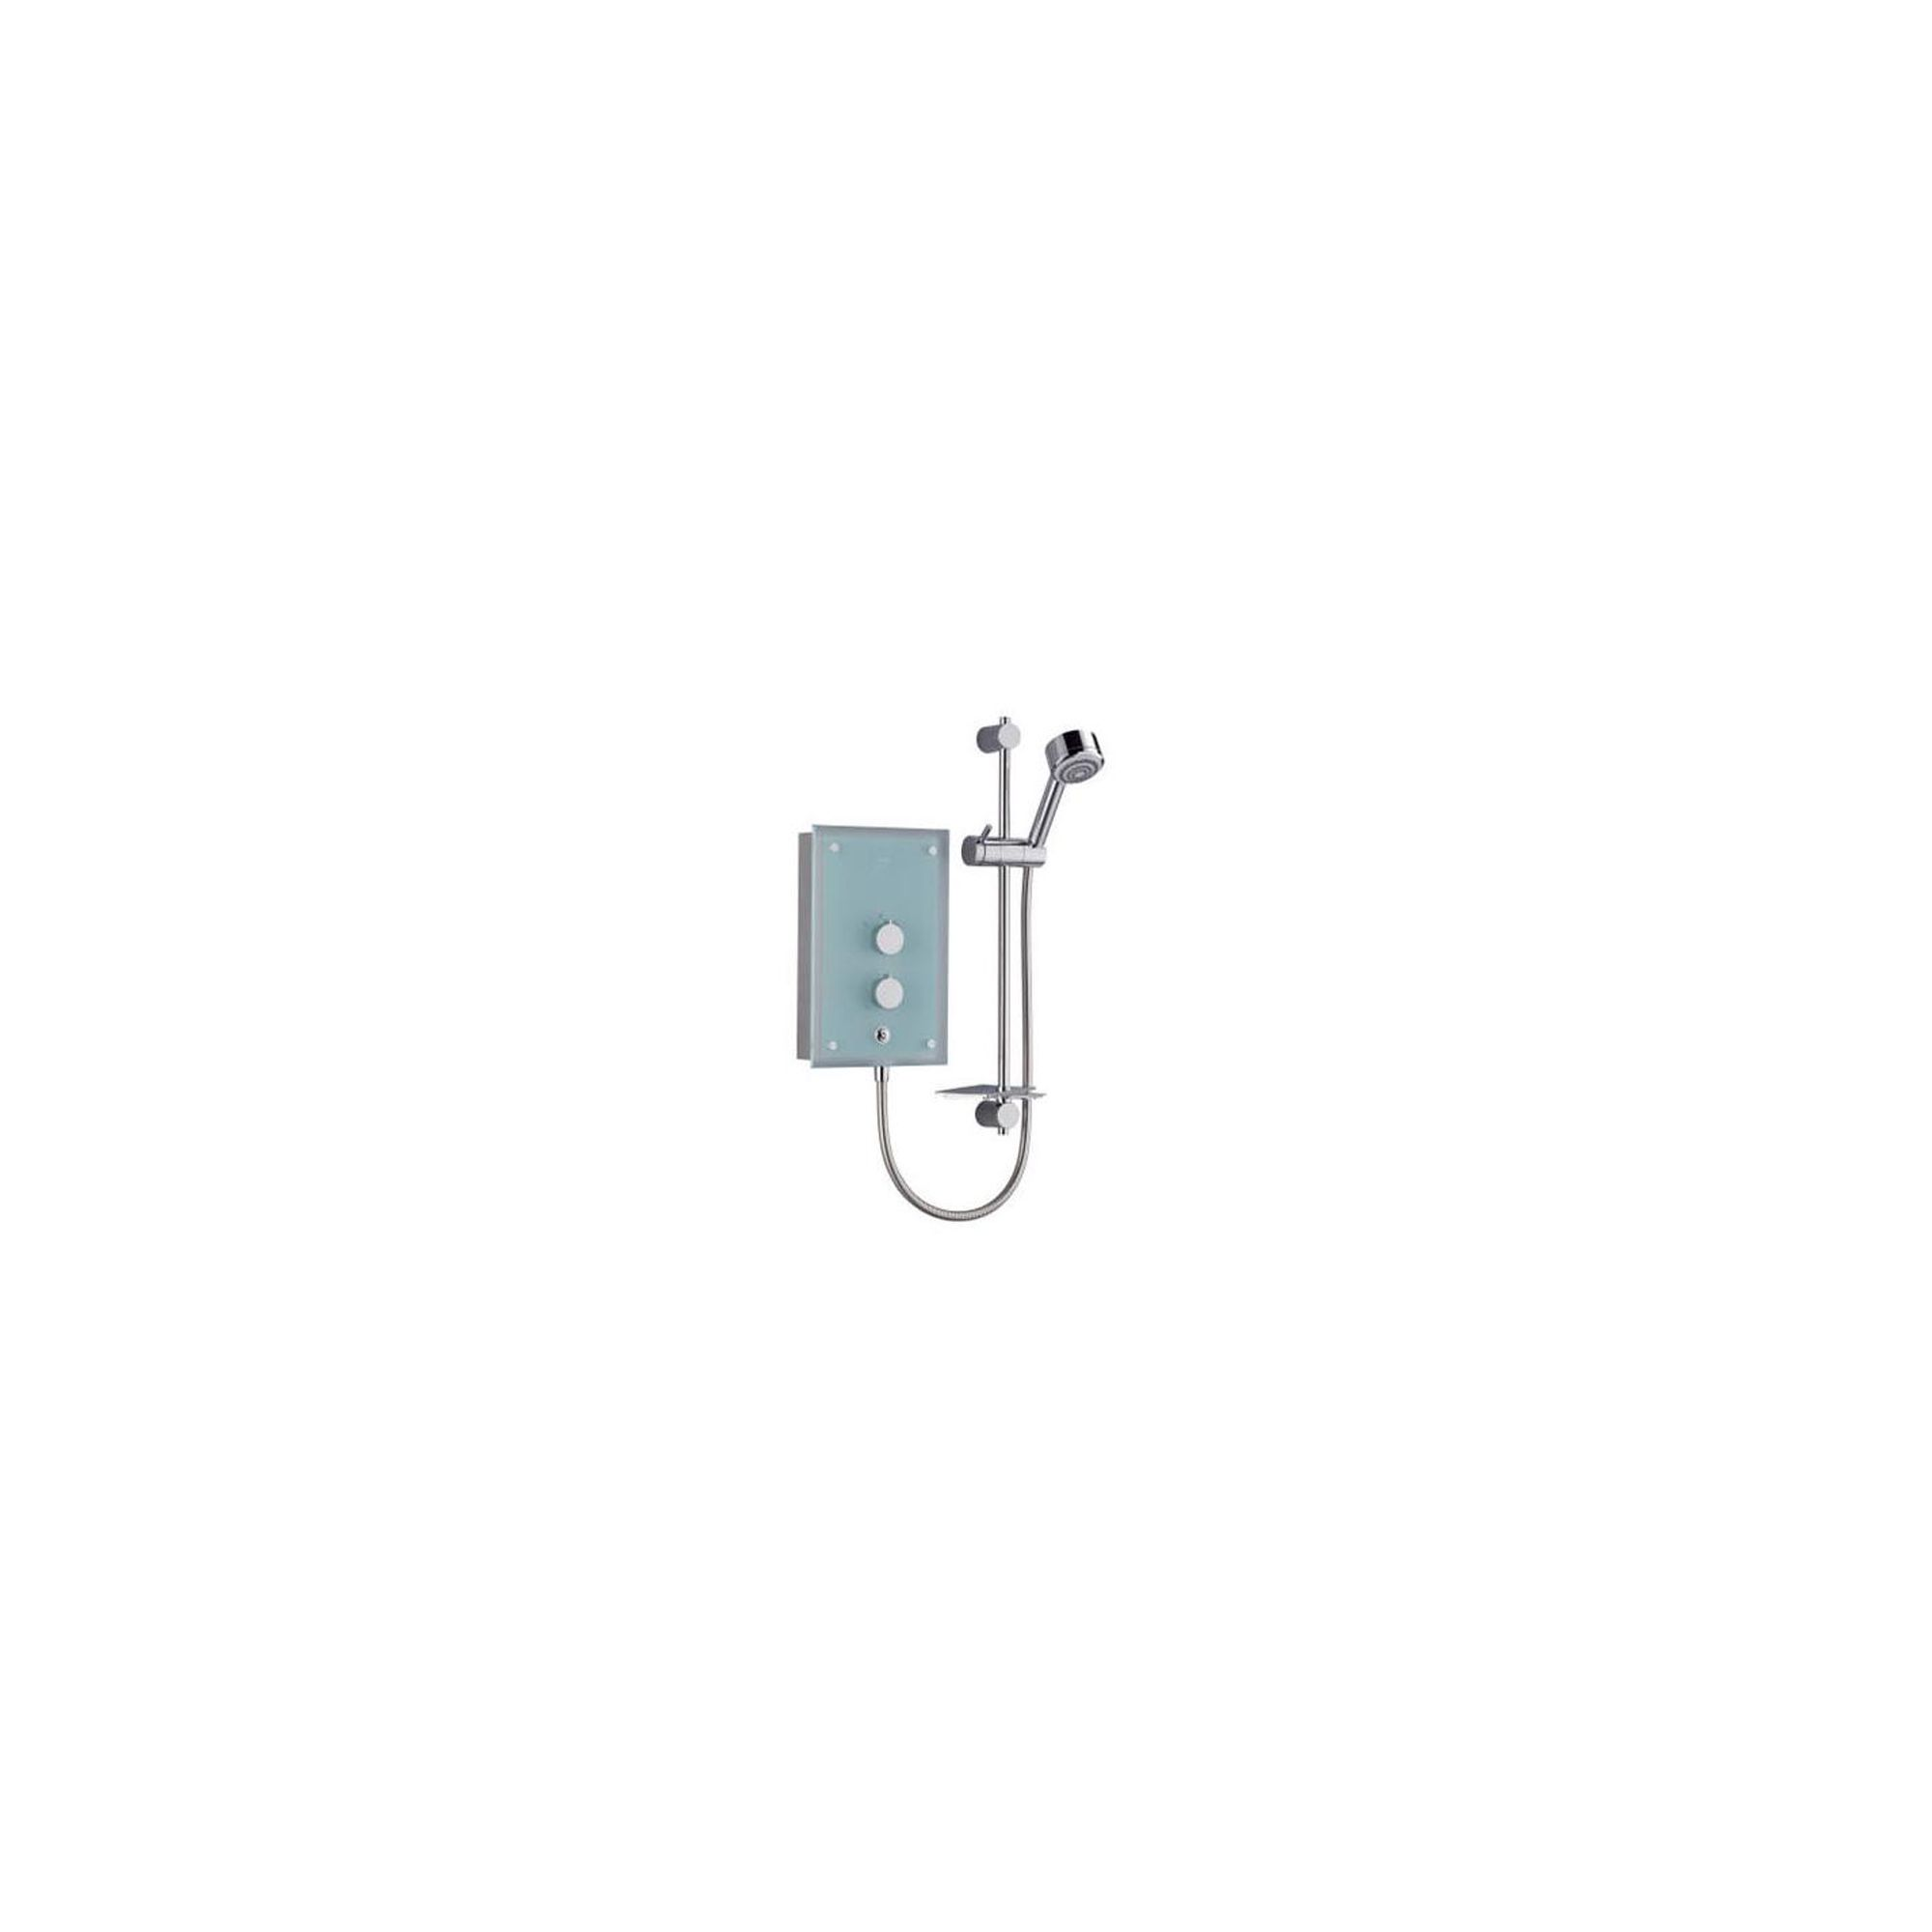 Mira Azora 9.8 kW Electric Shower, 4 Spray Handset, Frosted Glass/Chrome at Tesco Direct